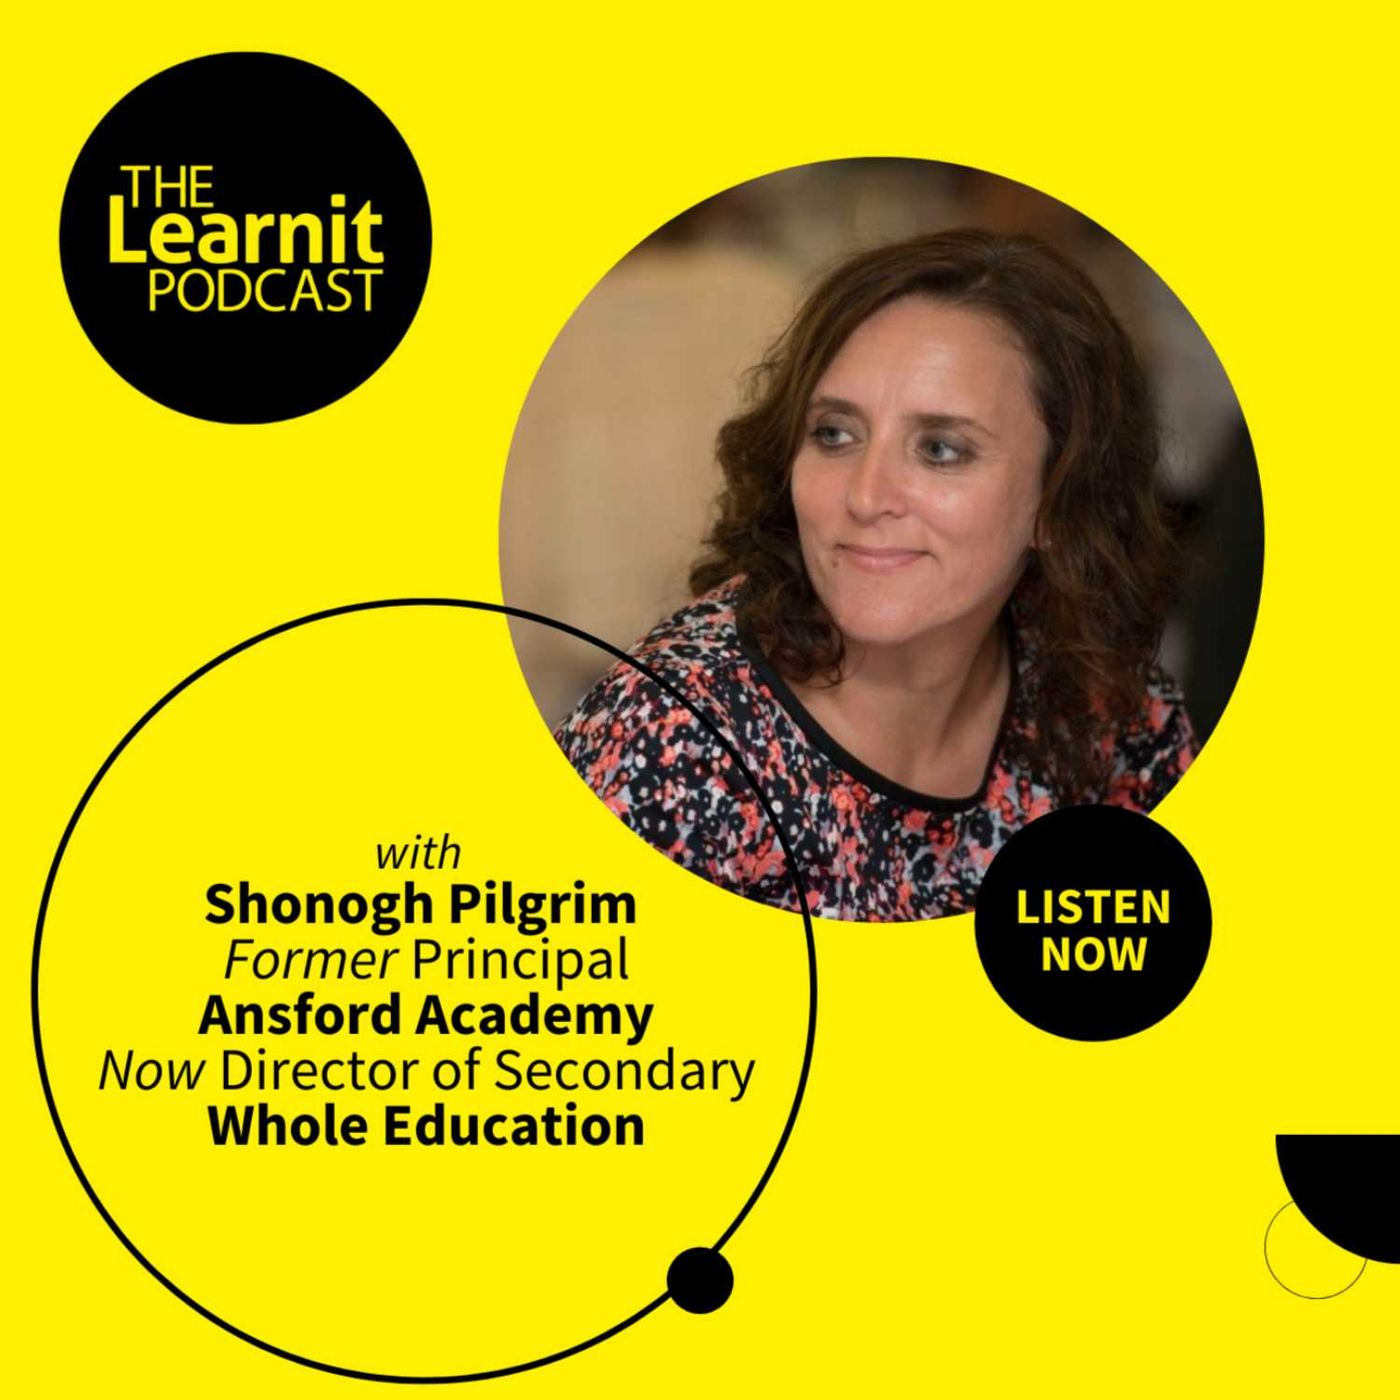 #32 Shonogh Pilgrim, Formerly Principal, Ansford Academy; Now Director of Secondary, Whole Education: Unspoken Crisis, Student Exclusion